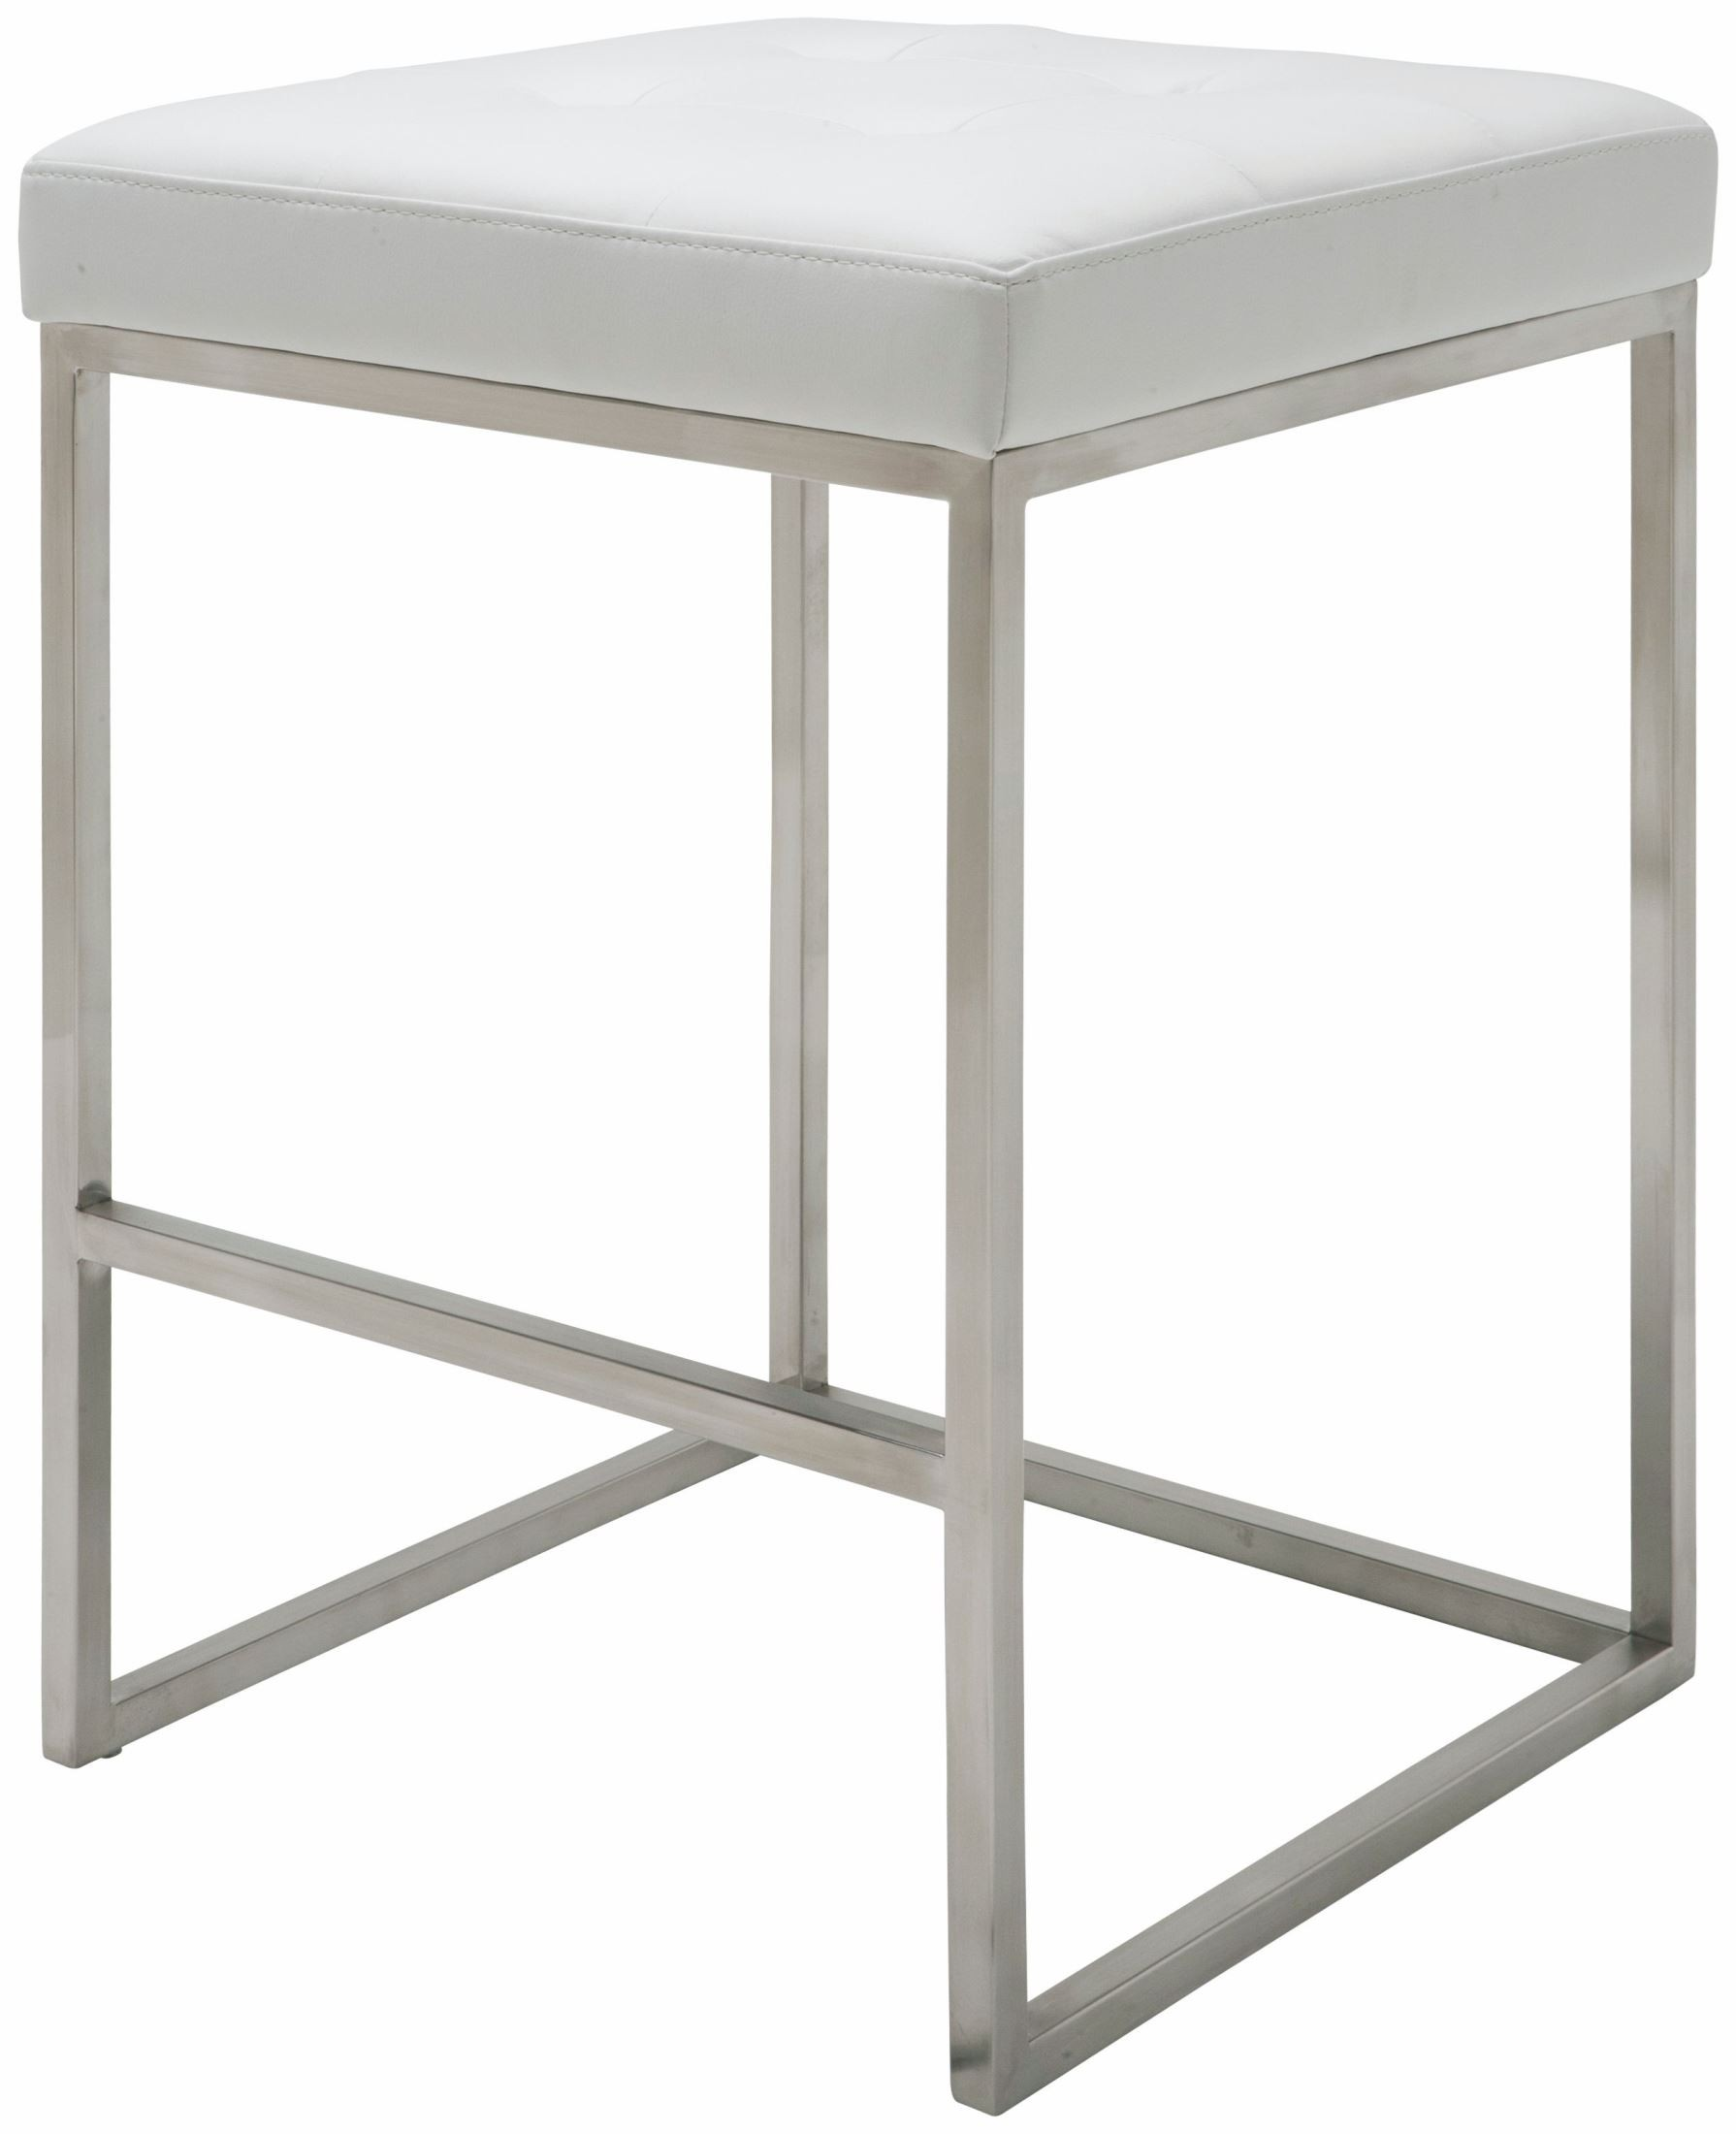 white leather bar chair mat walmart chi counter stool from nuevo coleman furniture